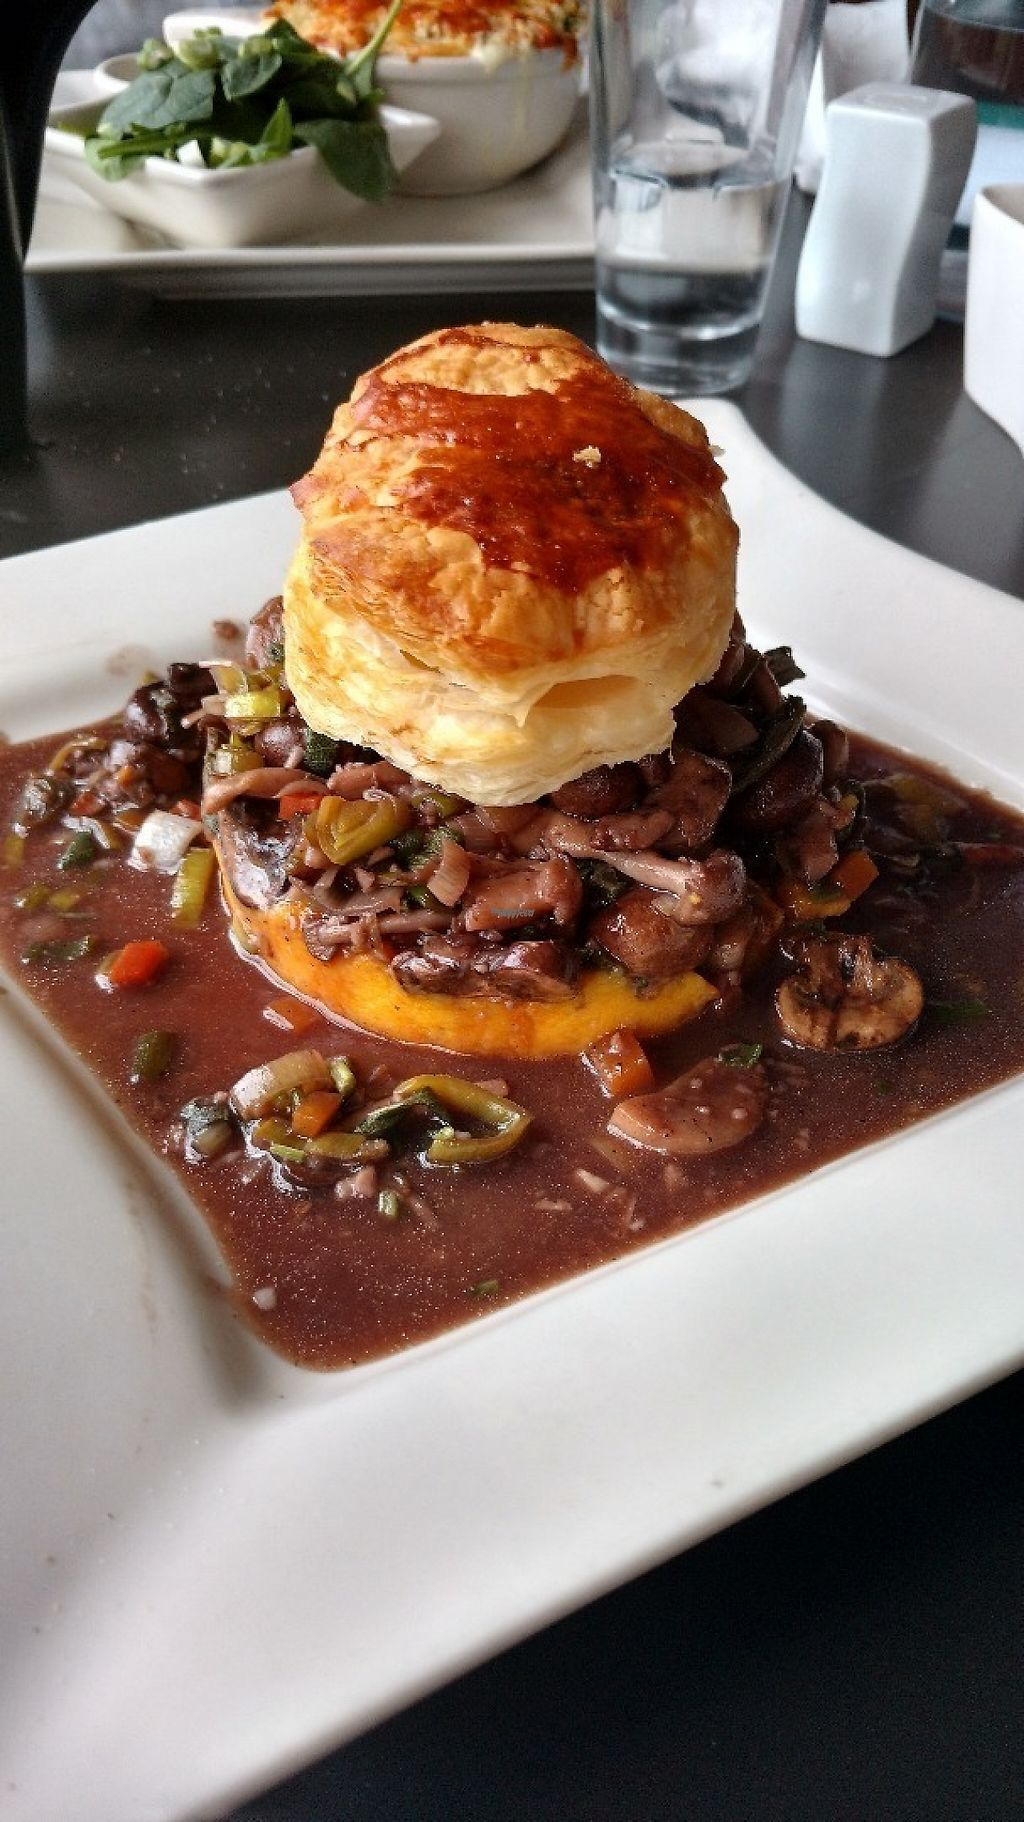 """Photo of The Hummingbird Cafe  by <a href=""""/members/profile/chrisvobe"""">chrisvobe</a> <br/>Mushroom """"Pot pie"""" over mashed potatoes.  <br/> March 19, 2017  - <a href='/contact/abuse/image/14944/238182'>Report</a>"""